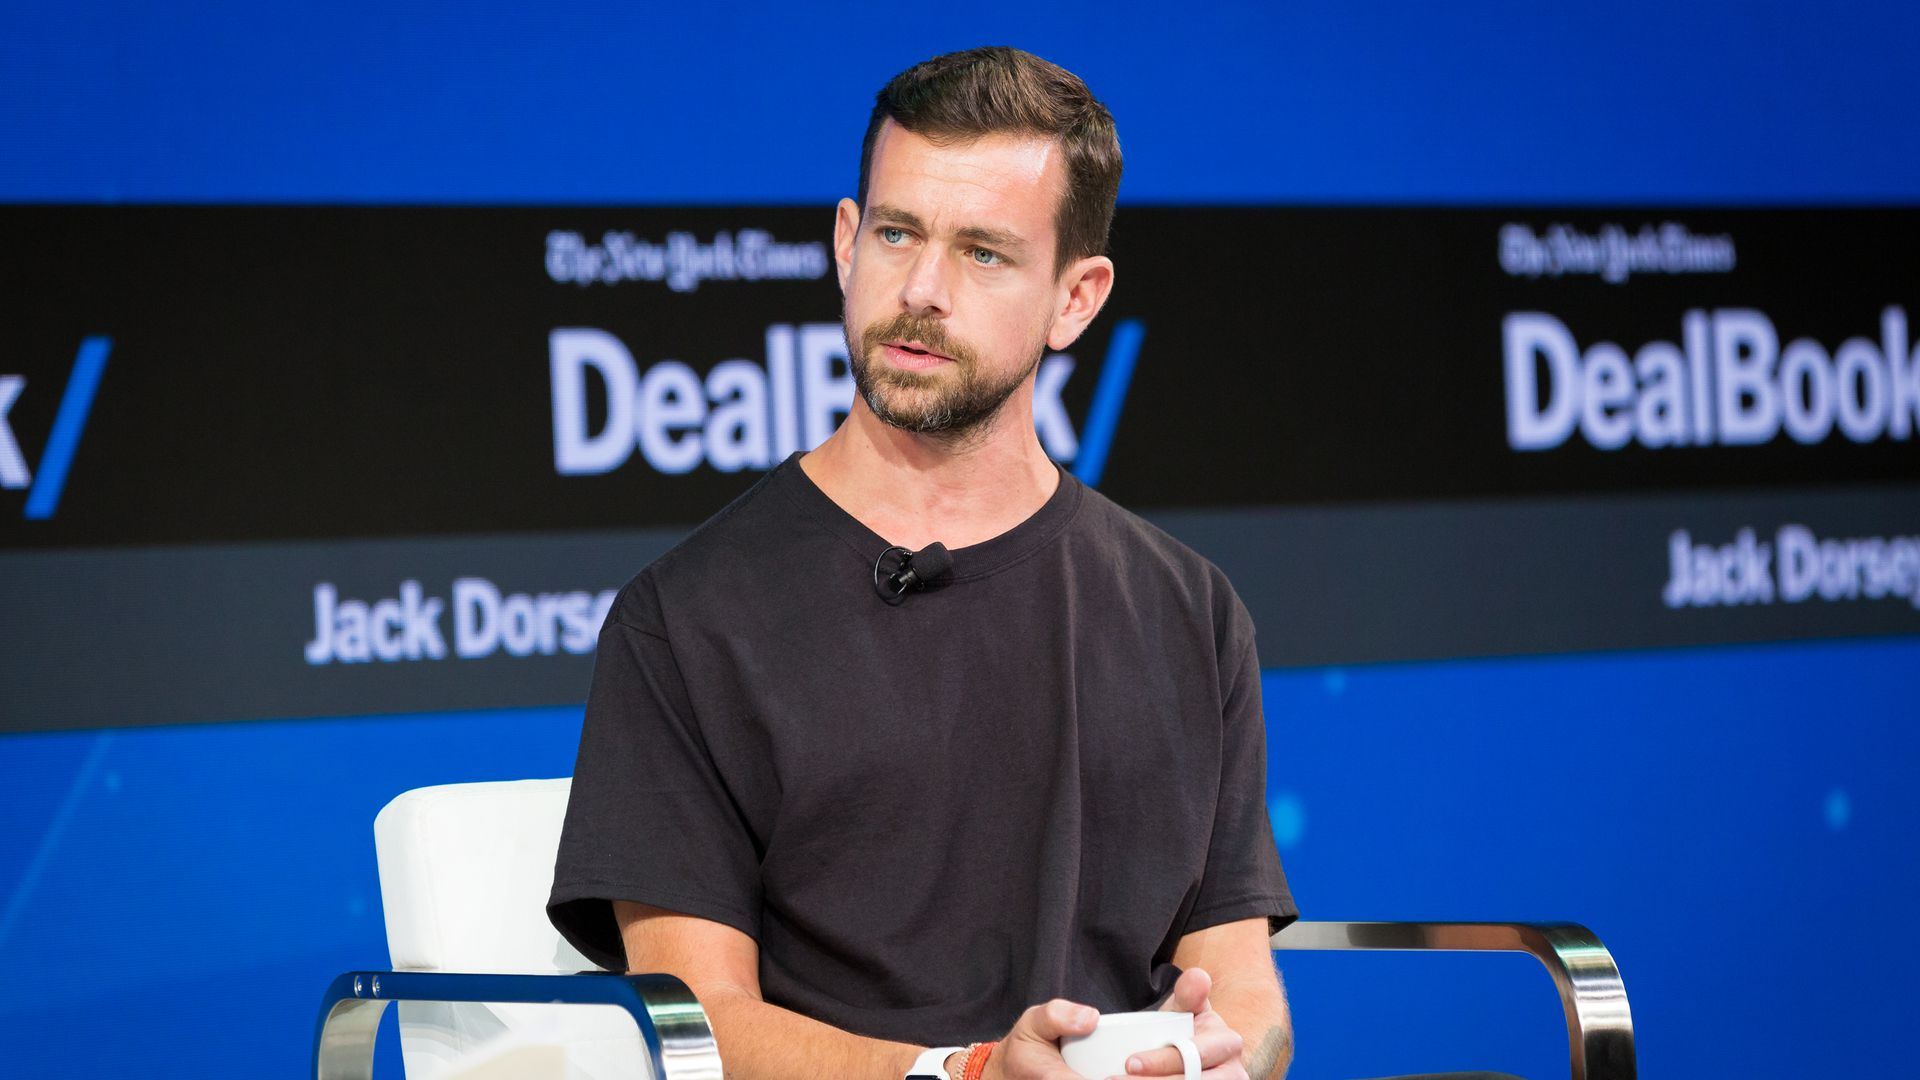 Twitter's Jack Dorsey on stage at a conference